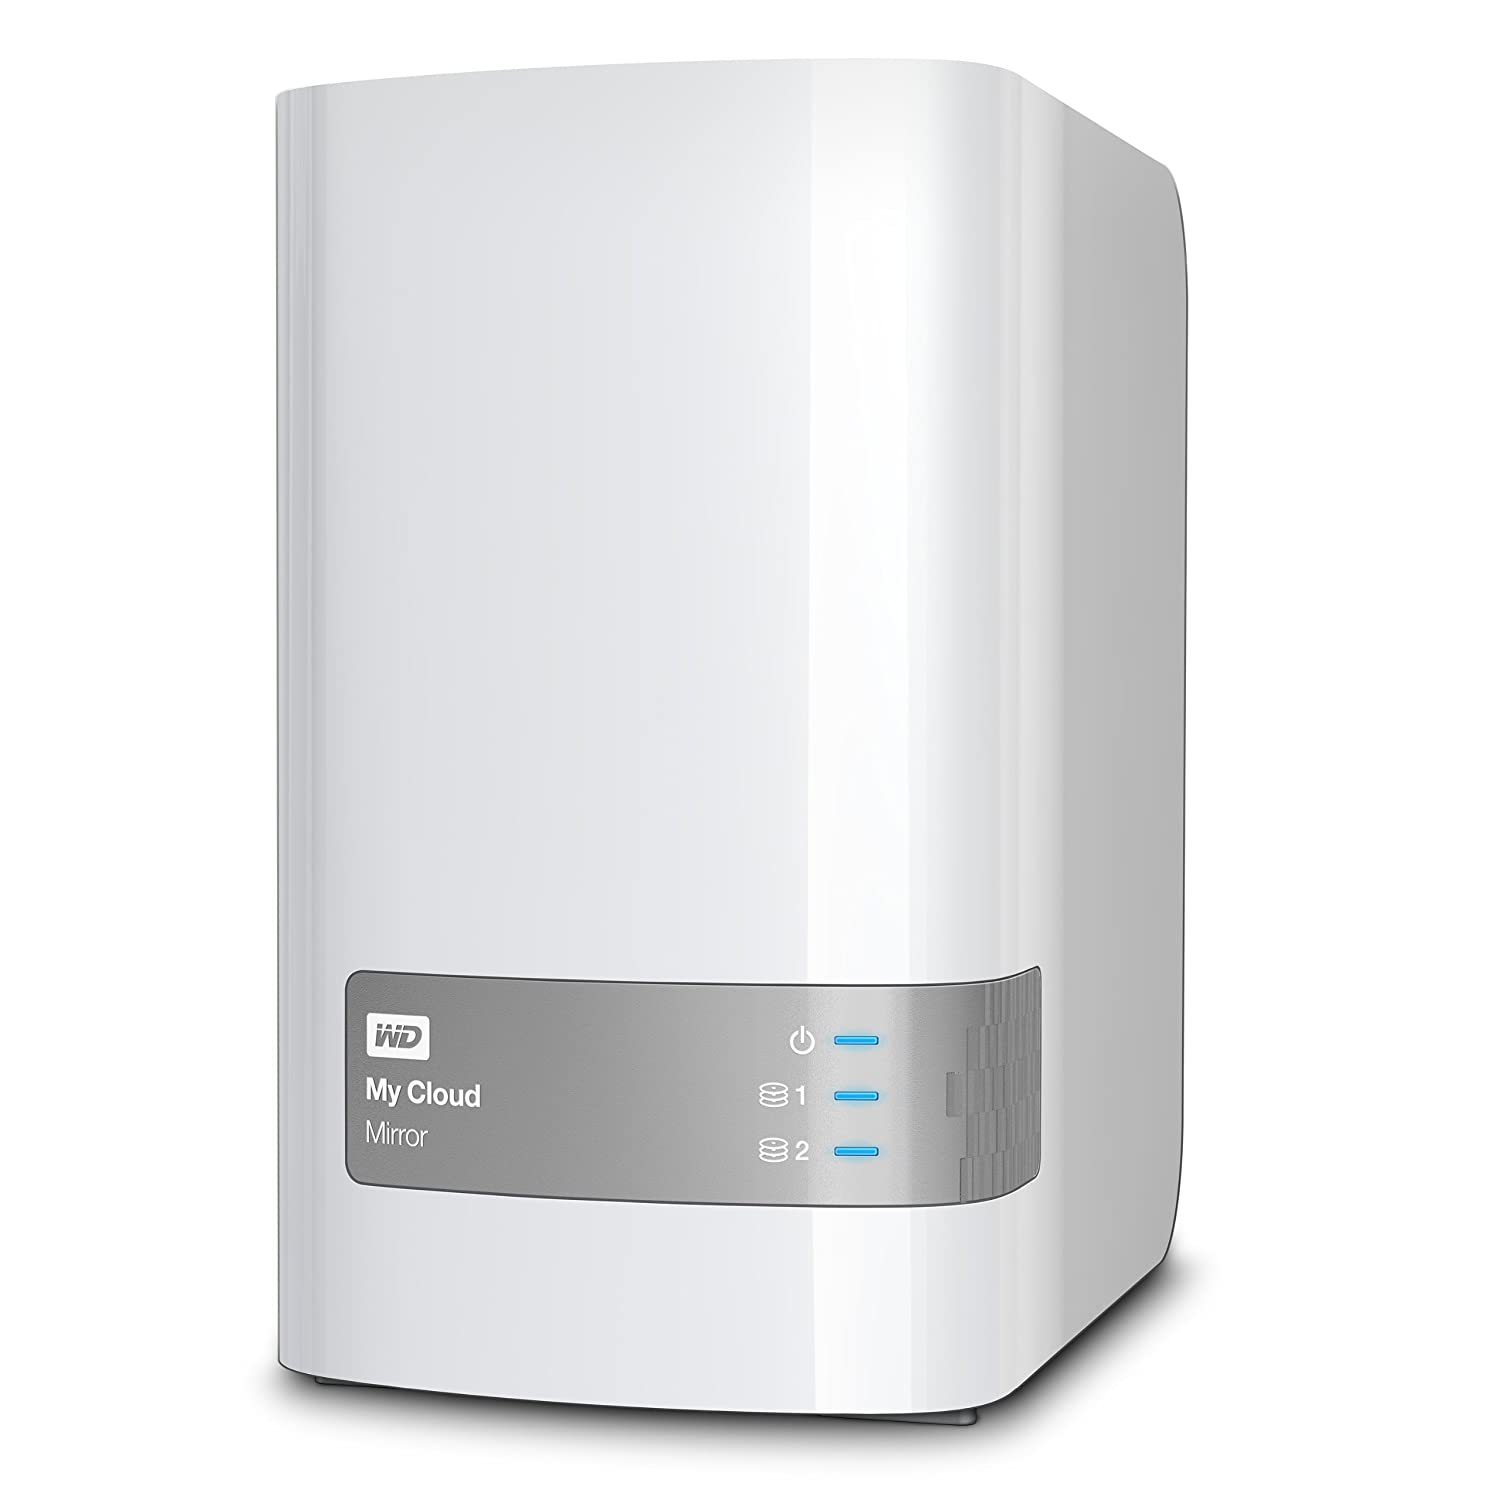 WD 12TB My Cloud Mirror Personal Network Attached Storage - NAS -  WDBZVM0120JWT-NESN